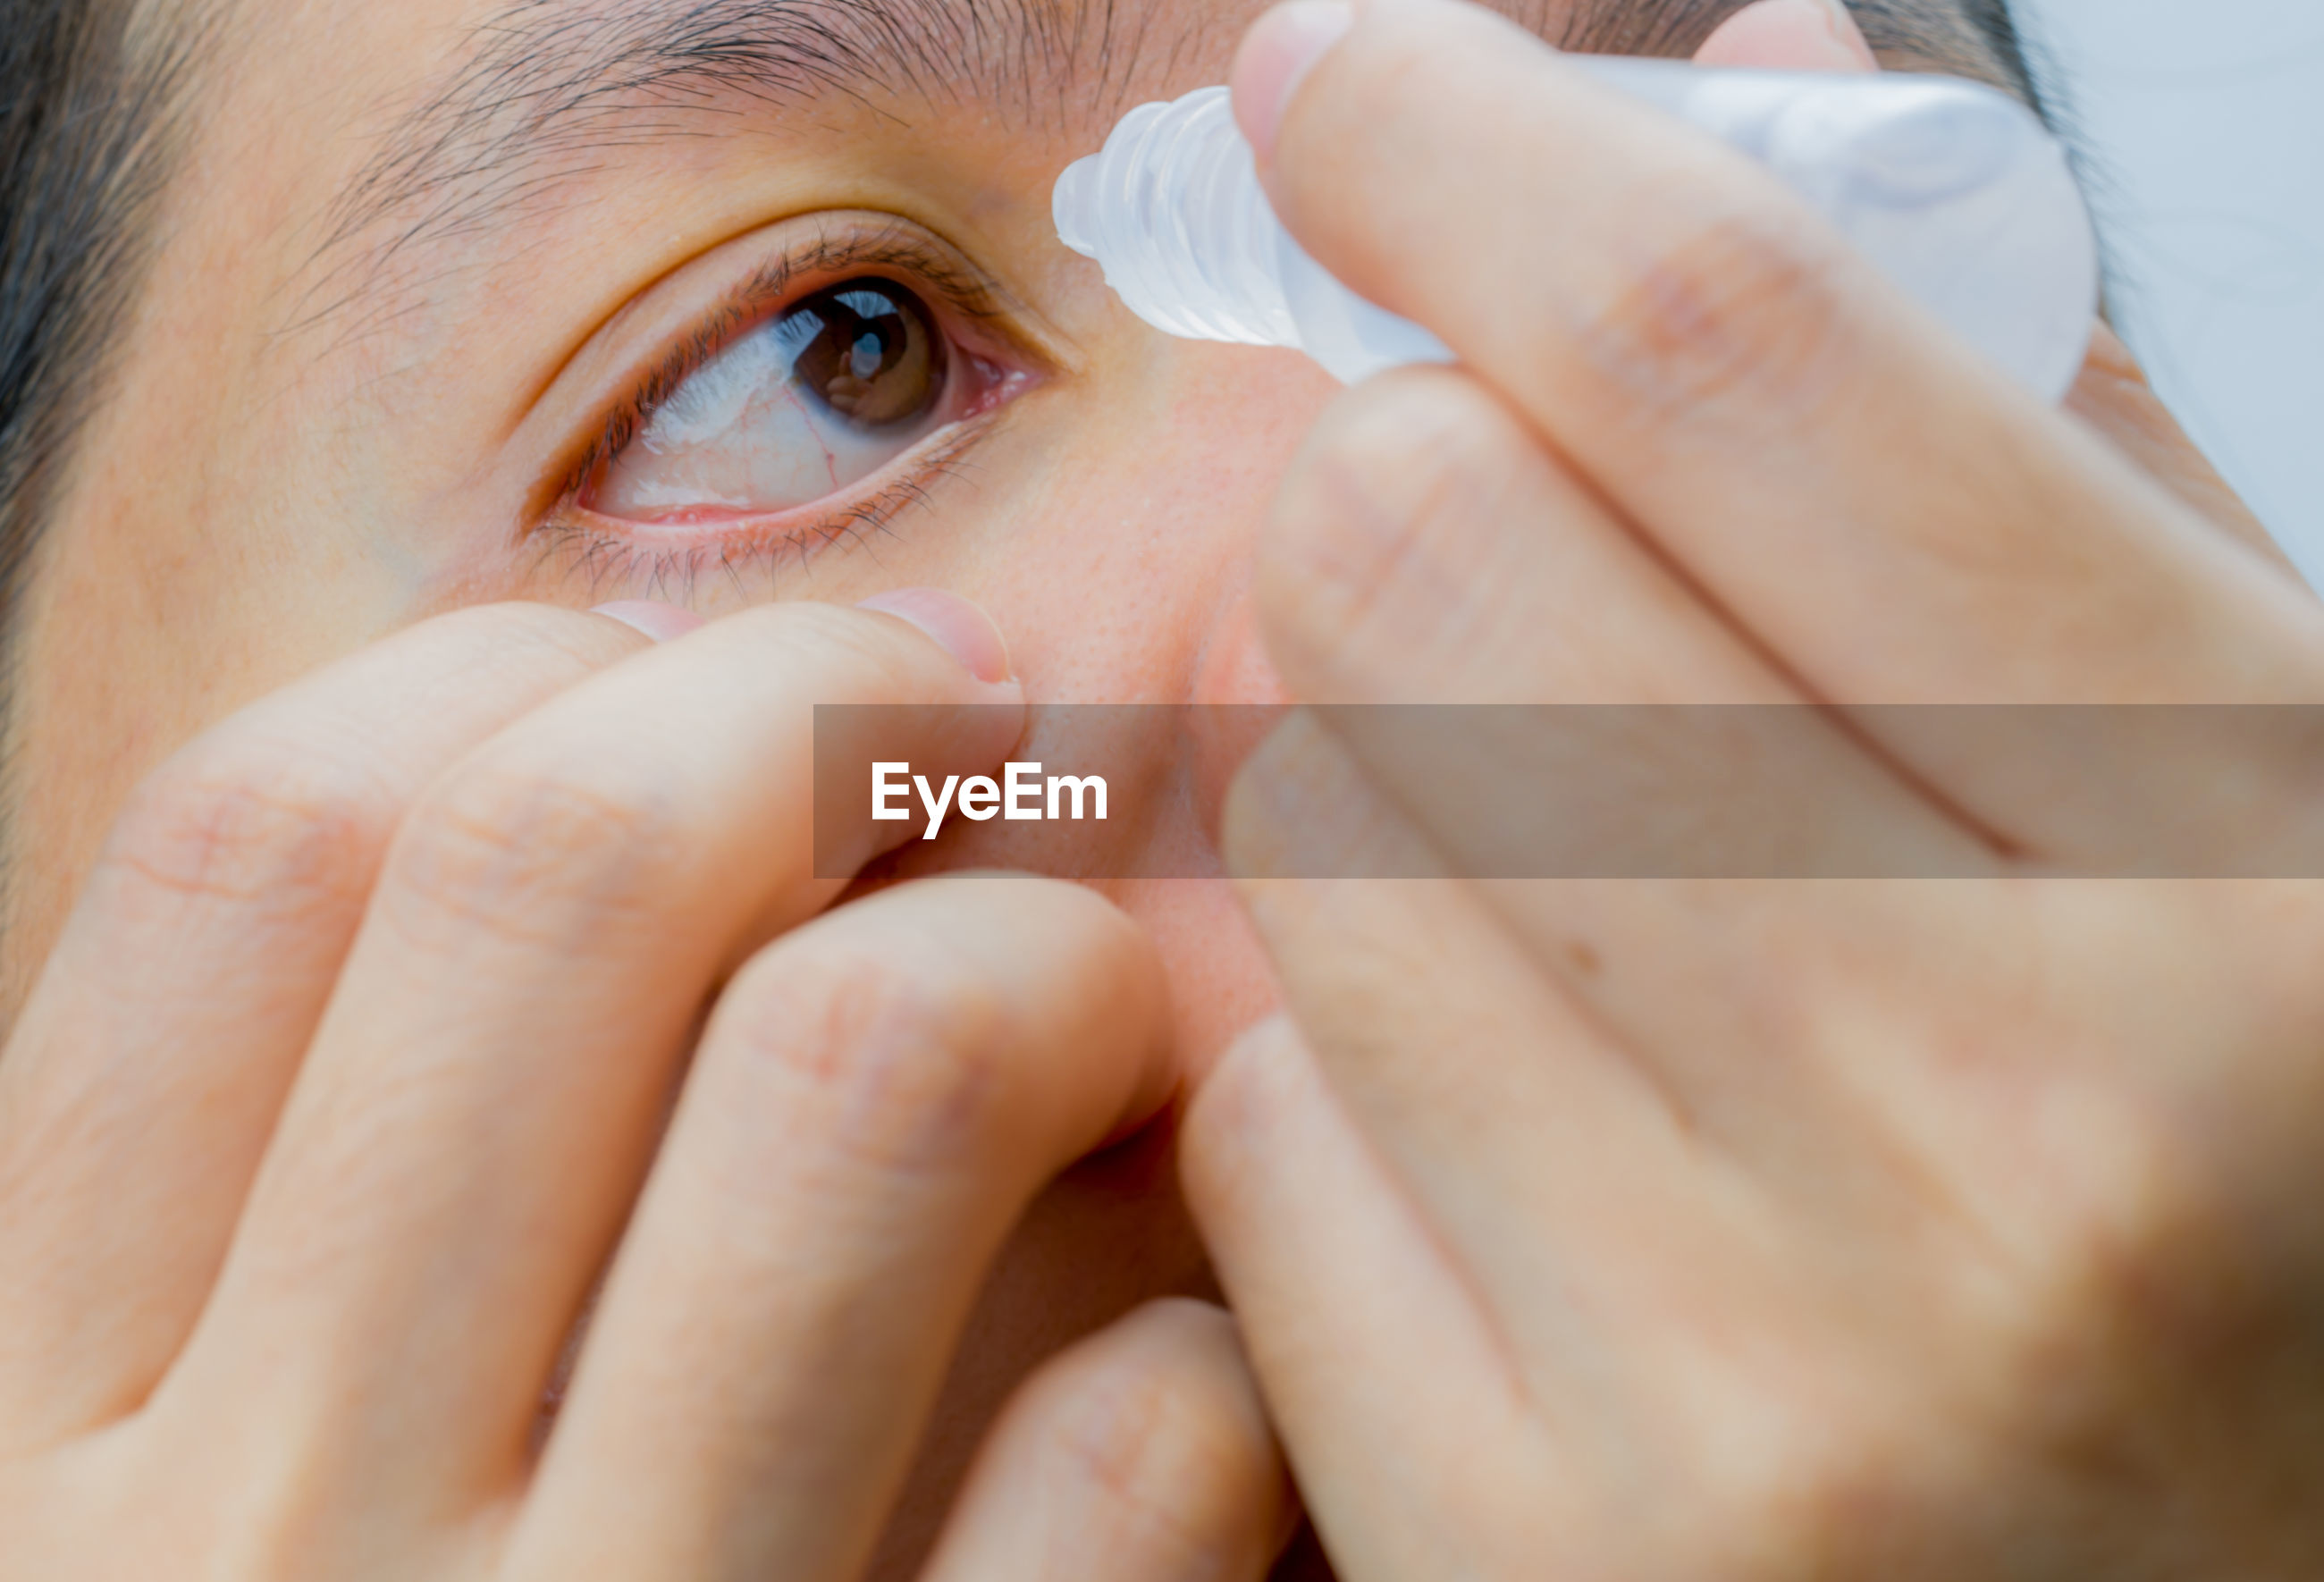 Close-up of woman putting drop in eye